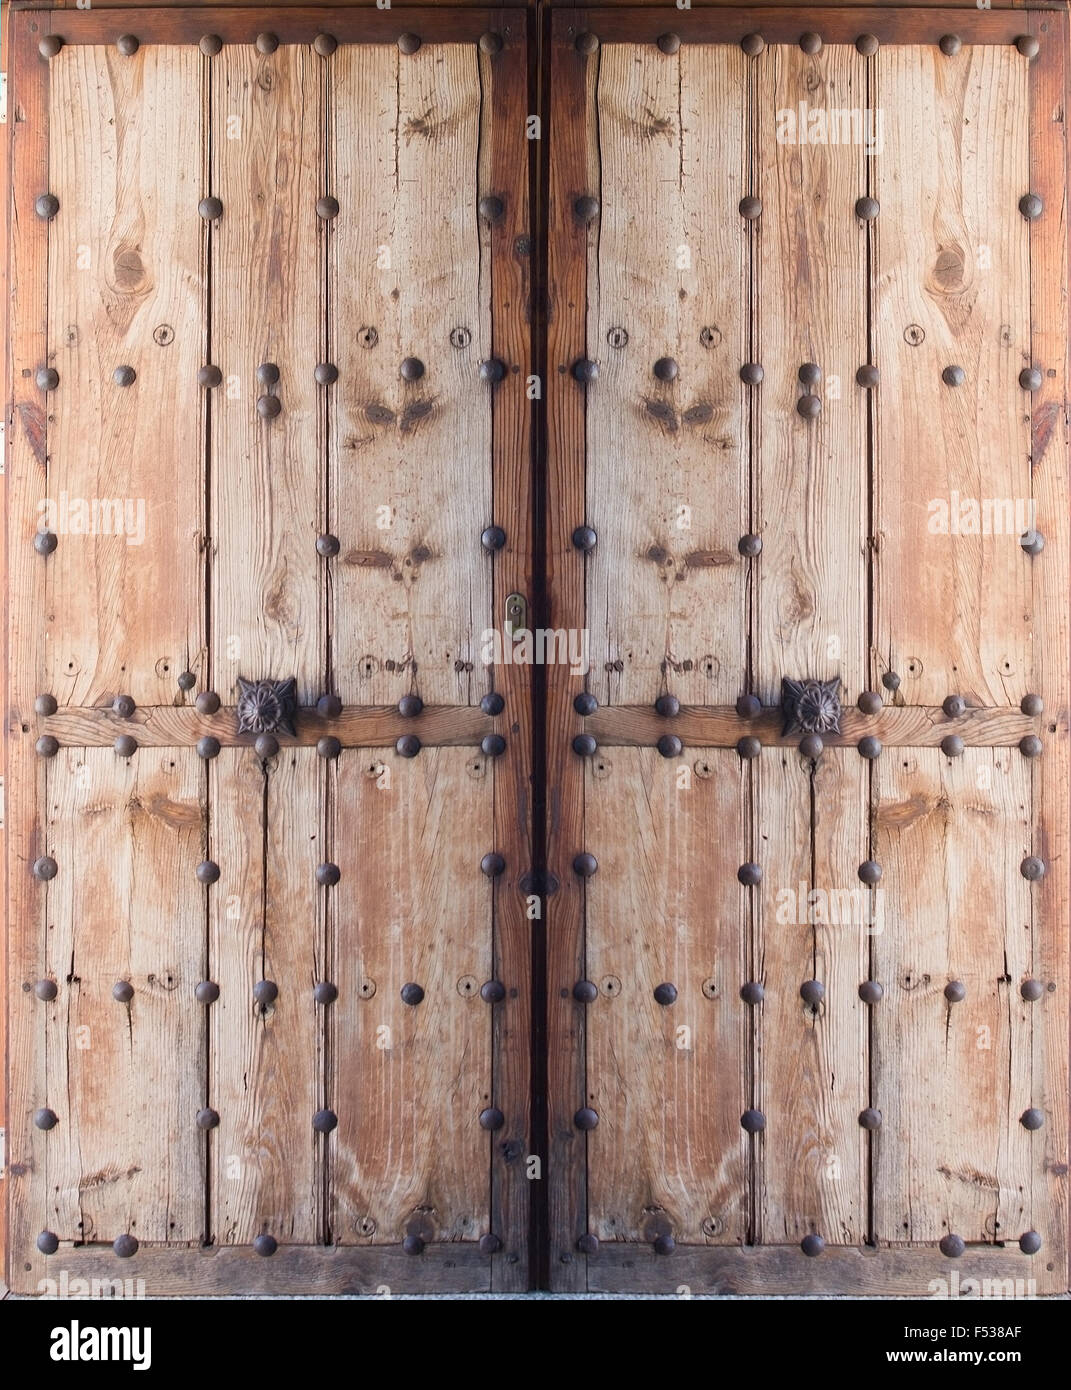 Double doors of antique wood and metal nails, Mallorca, Balearic islands,  Spain - Double Doors Of Antique Wood And Metal Nails, Mallorca, Balearic